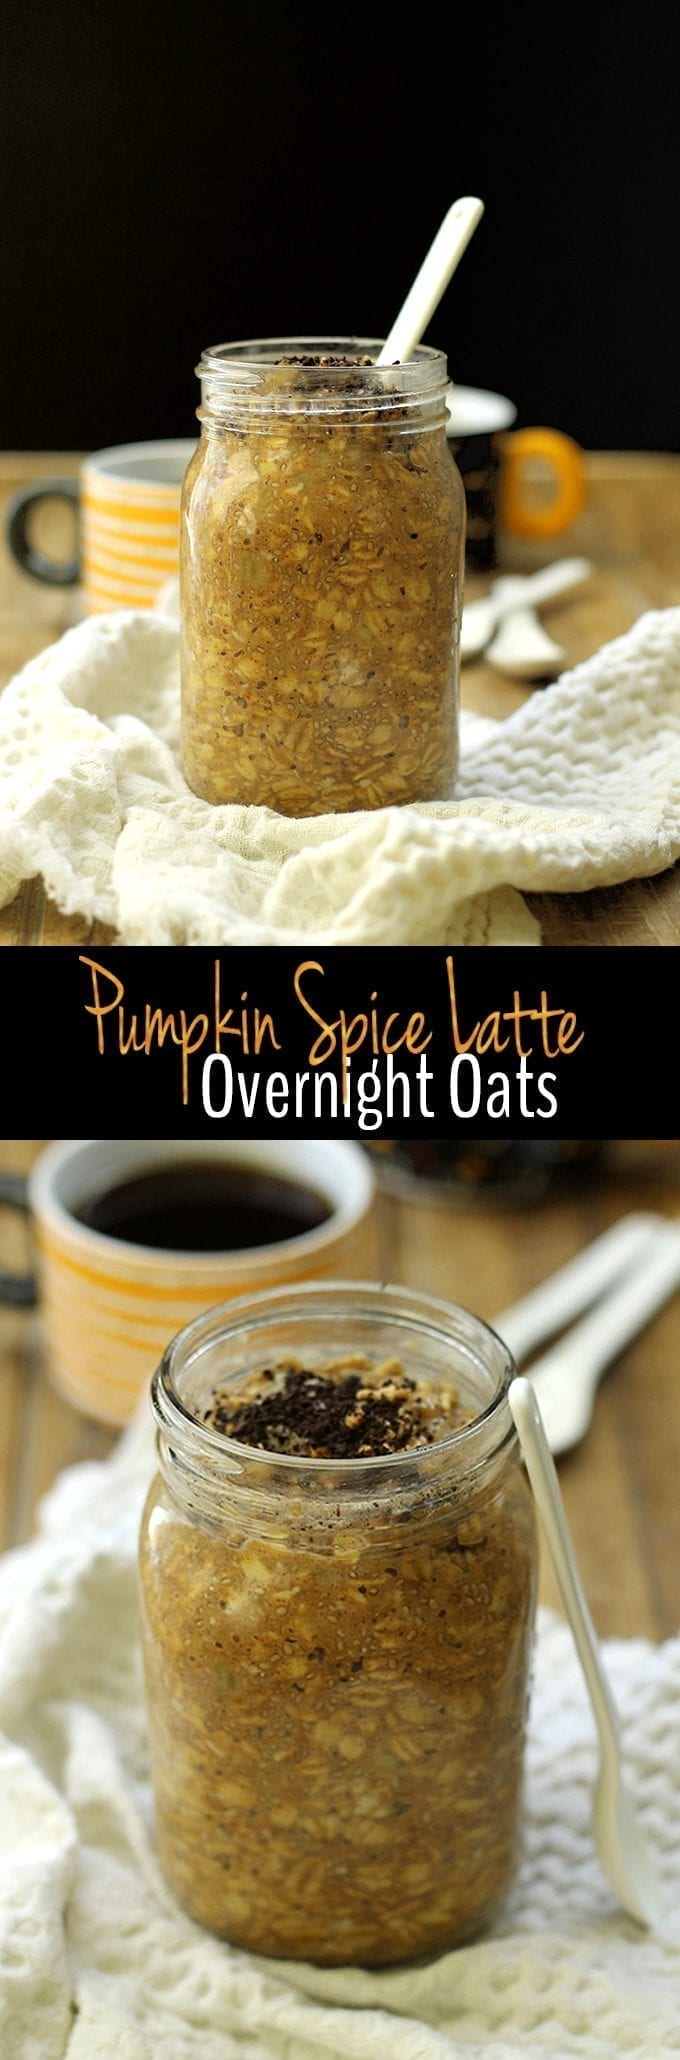 Pumpkin Spice Latte Overnight Oats - an easy, one-step breakfast version of your favorite Fall drink.